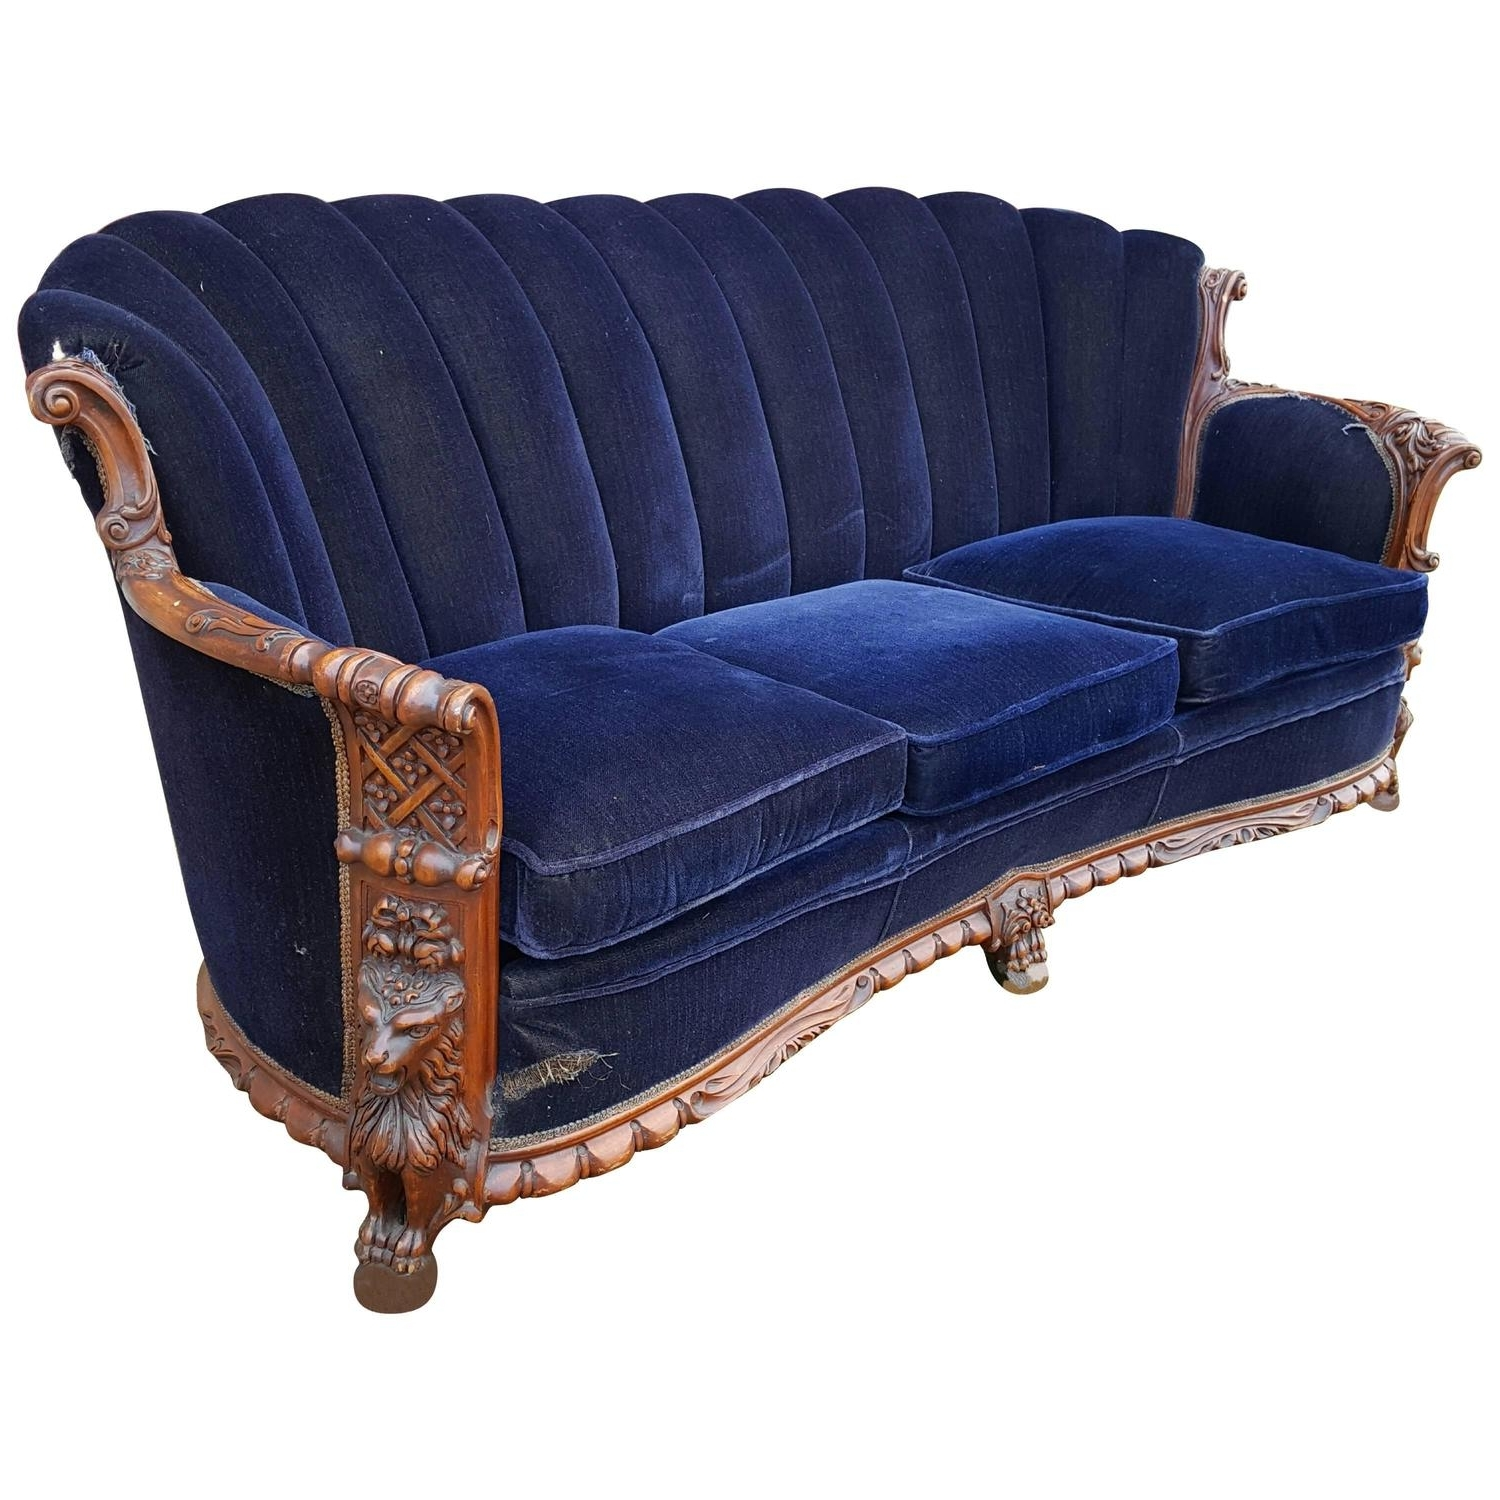 1930S Sofas Intended For Fashionable 1930S Mohair And Carved Wood Sofa, Carved Lion Motif At 1Stdibs (View 3 of 20)